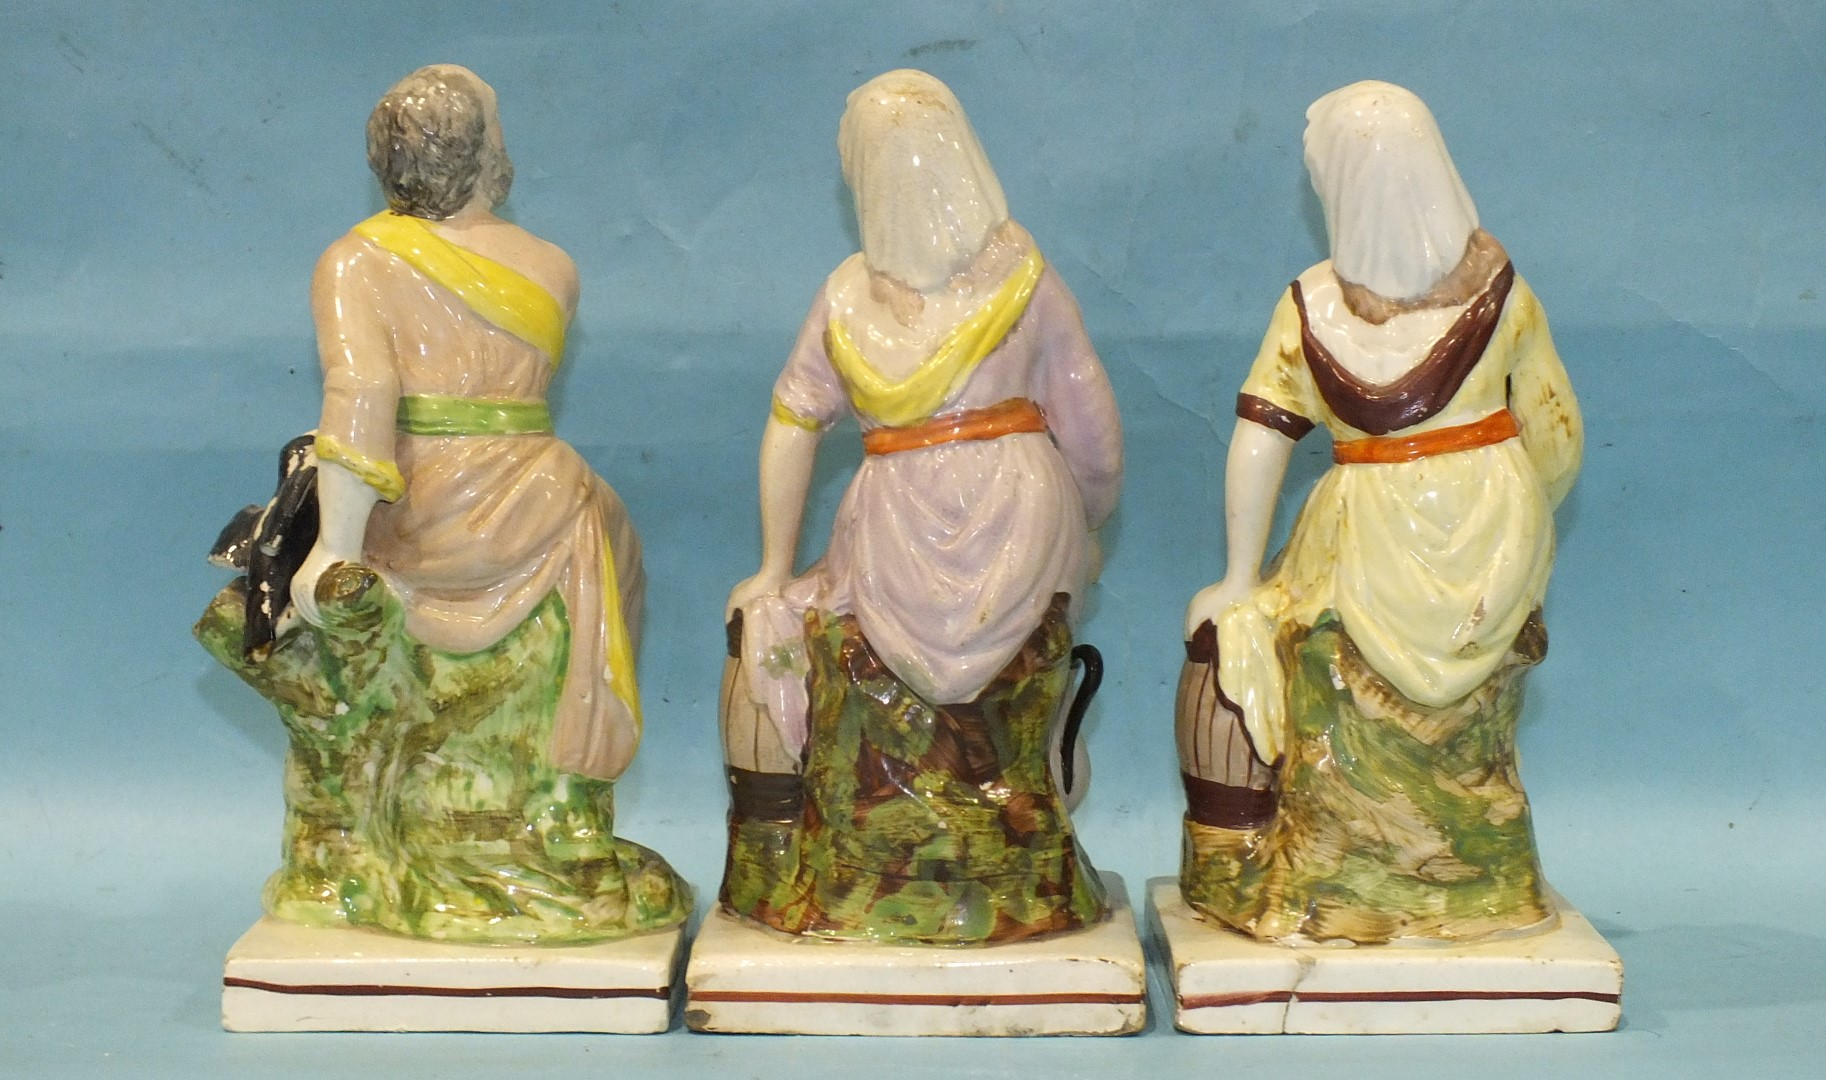 Lot 141 - A pair of early-19th century Staffordshire pearlware square-based figures of Elijah and the widow